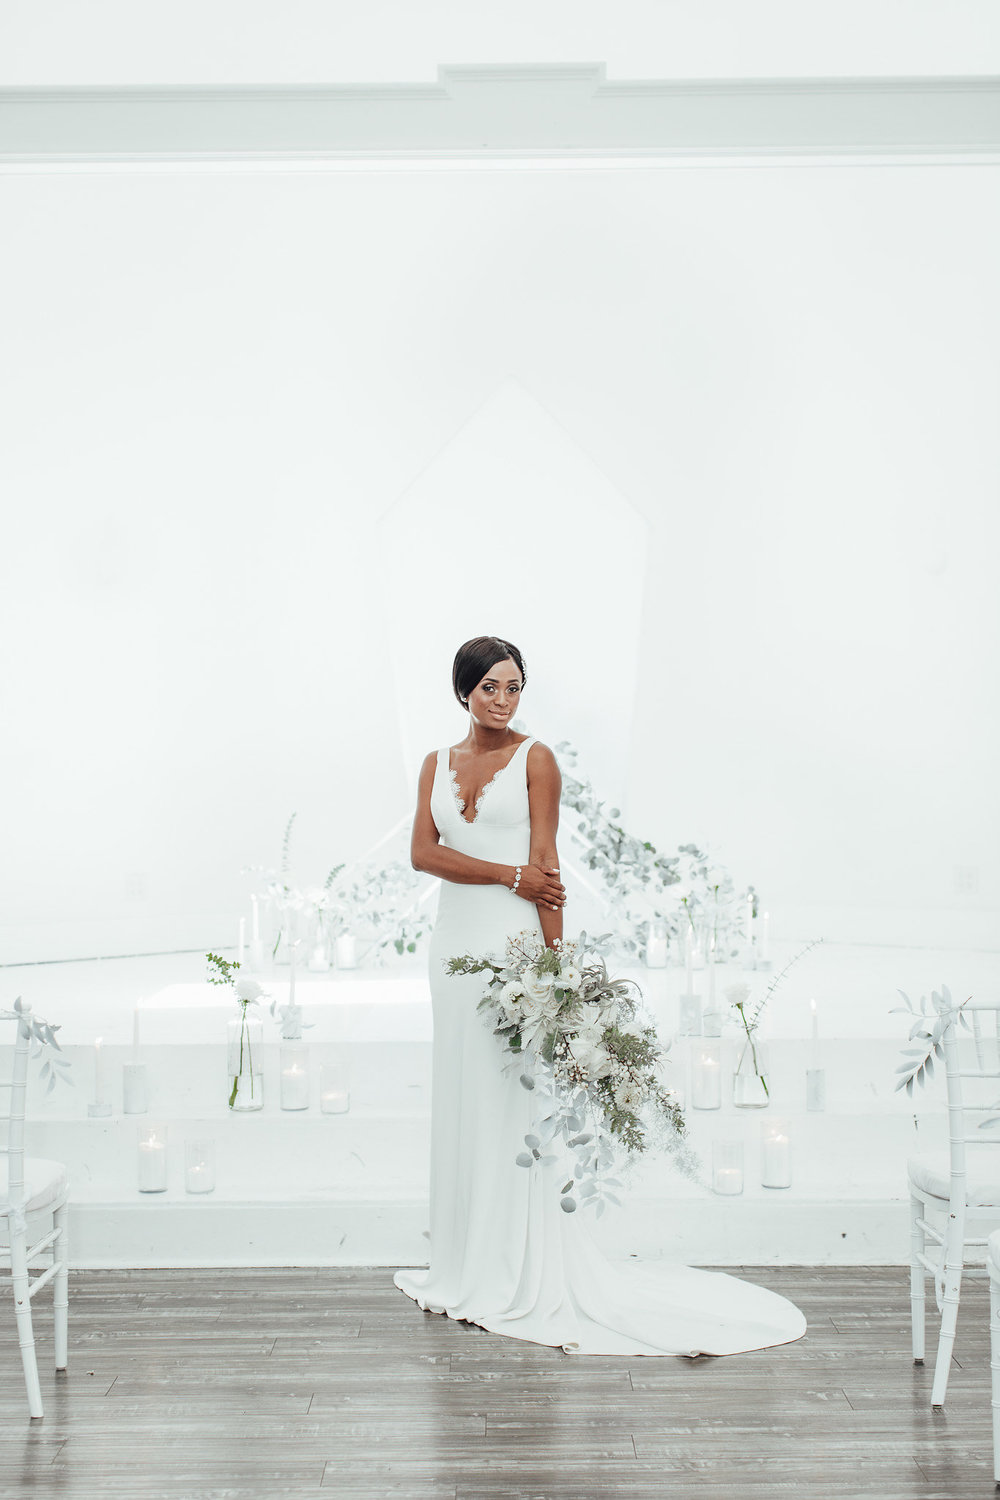 A New Wintry Mix: Monochromatic White Wedding Styled Shoot